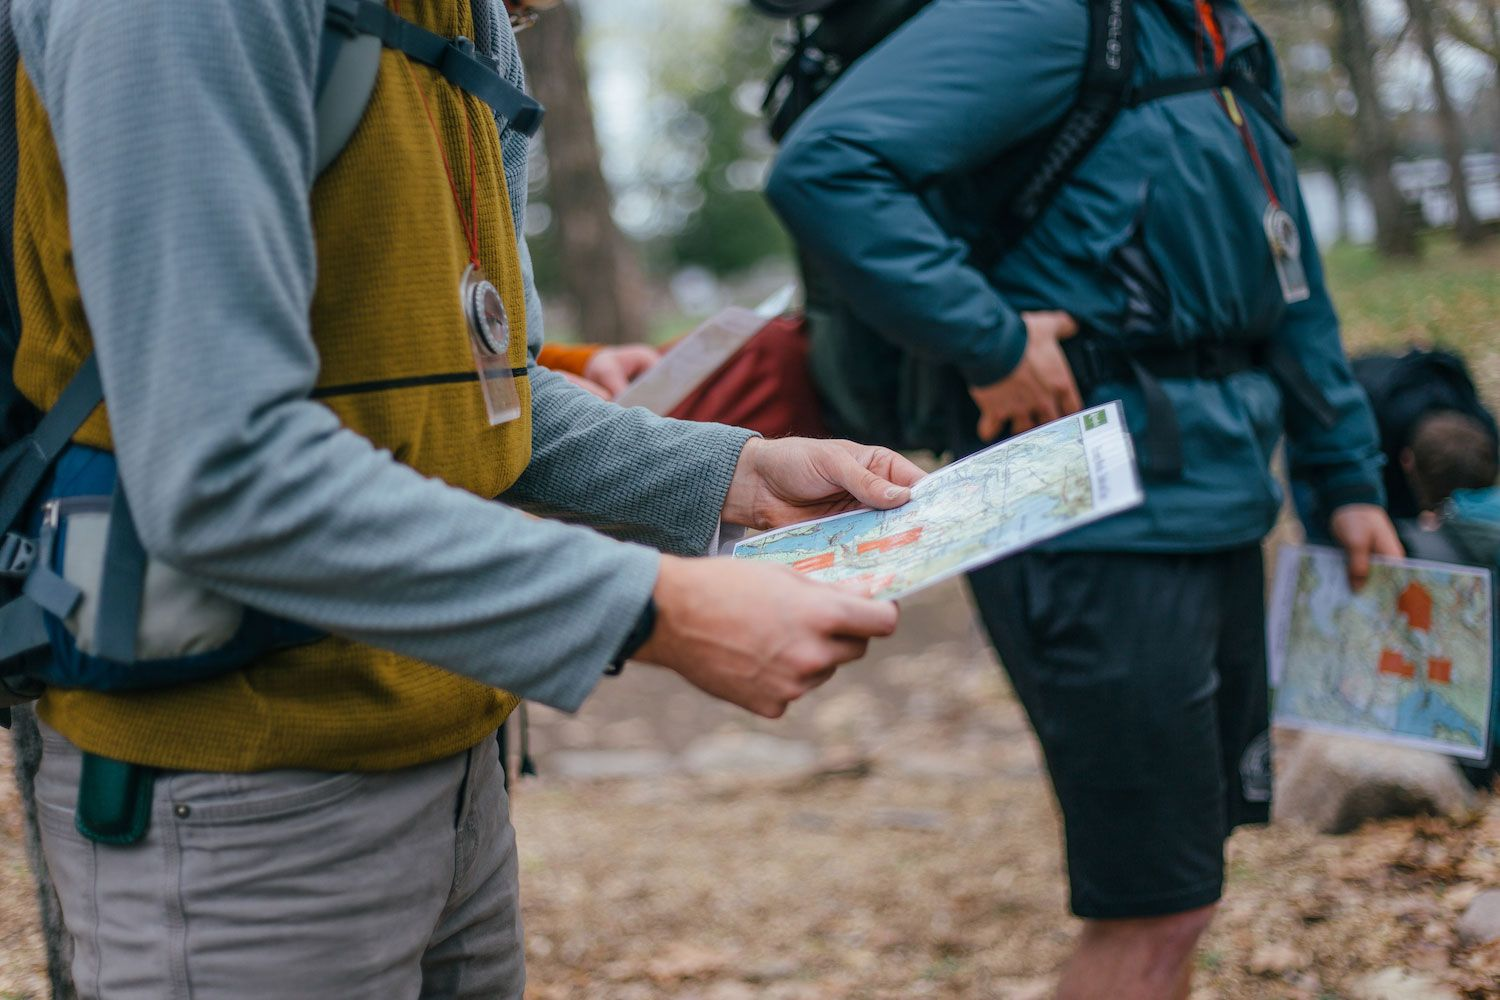 Under the guidance of their cabin leaders, campers follow trail signs to make their way to their campsites.